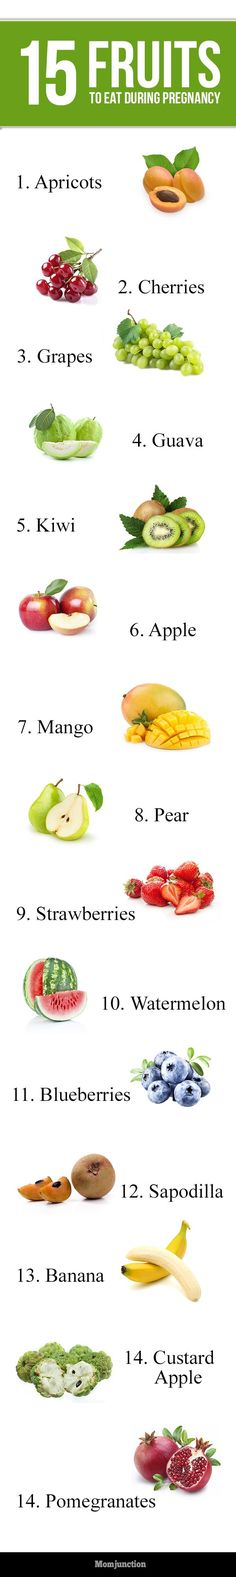 Nutritious Fruits To Eat During #Pregnancy :Here are the different kinds of fruits you can eat during your pregnancy. These are all very healthy for your baby's development and will provide you with ample nutrition and energy.